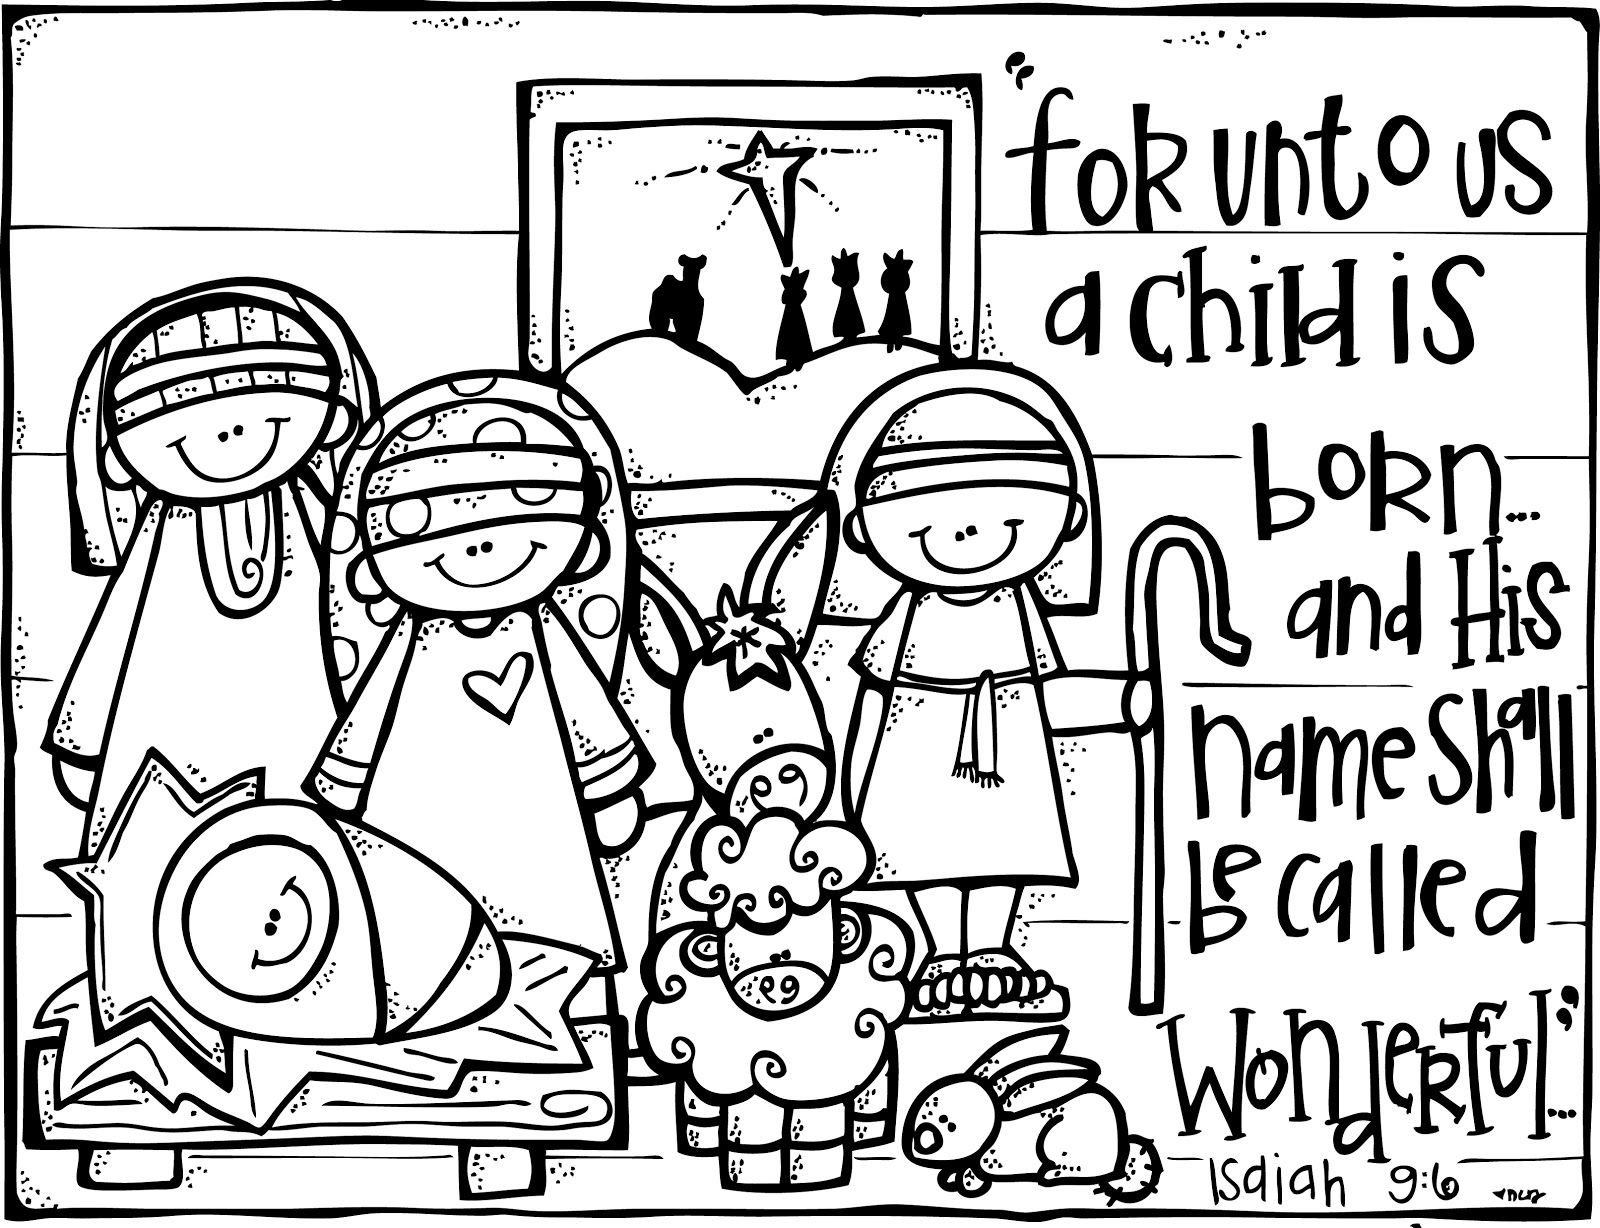 christian christmas activities free nativity coloring page from melonheadz december school. Black Bedroom Furniture Sets. Home Design Ideas